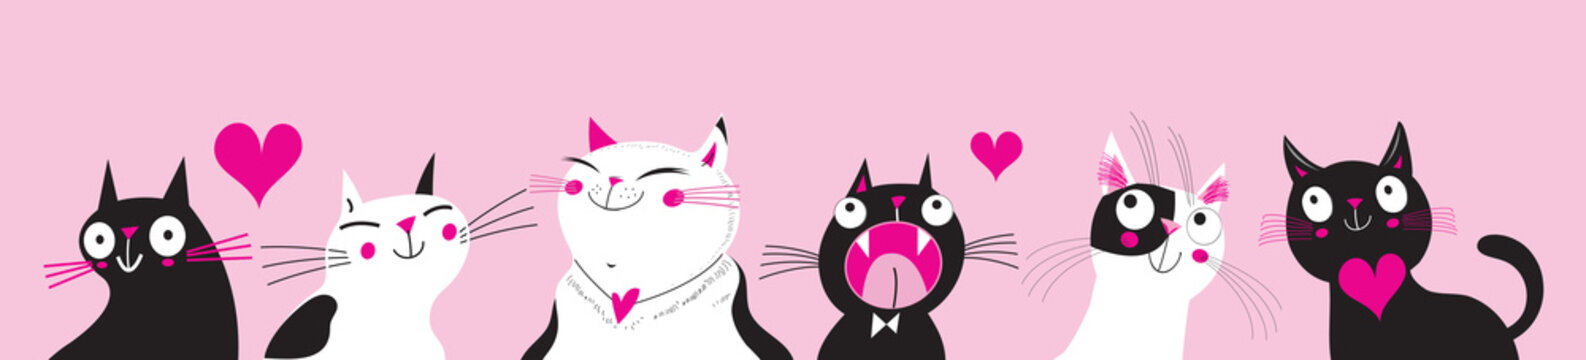 Festive vector greeting card with funny cats in love